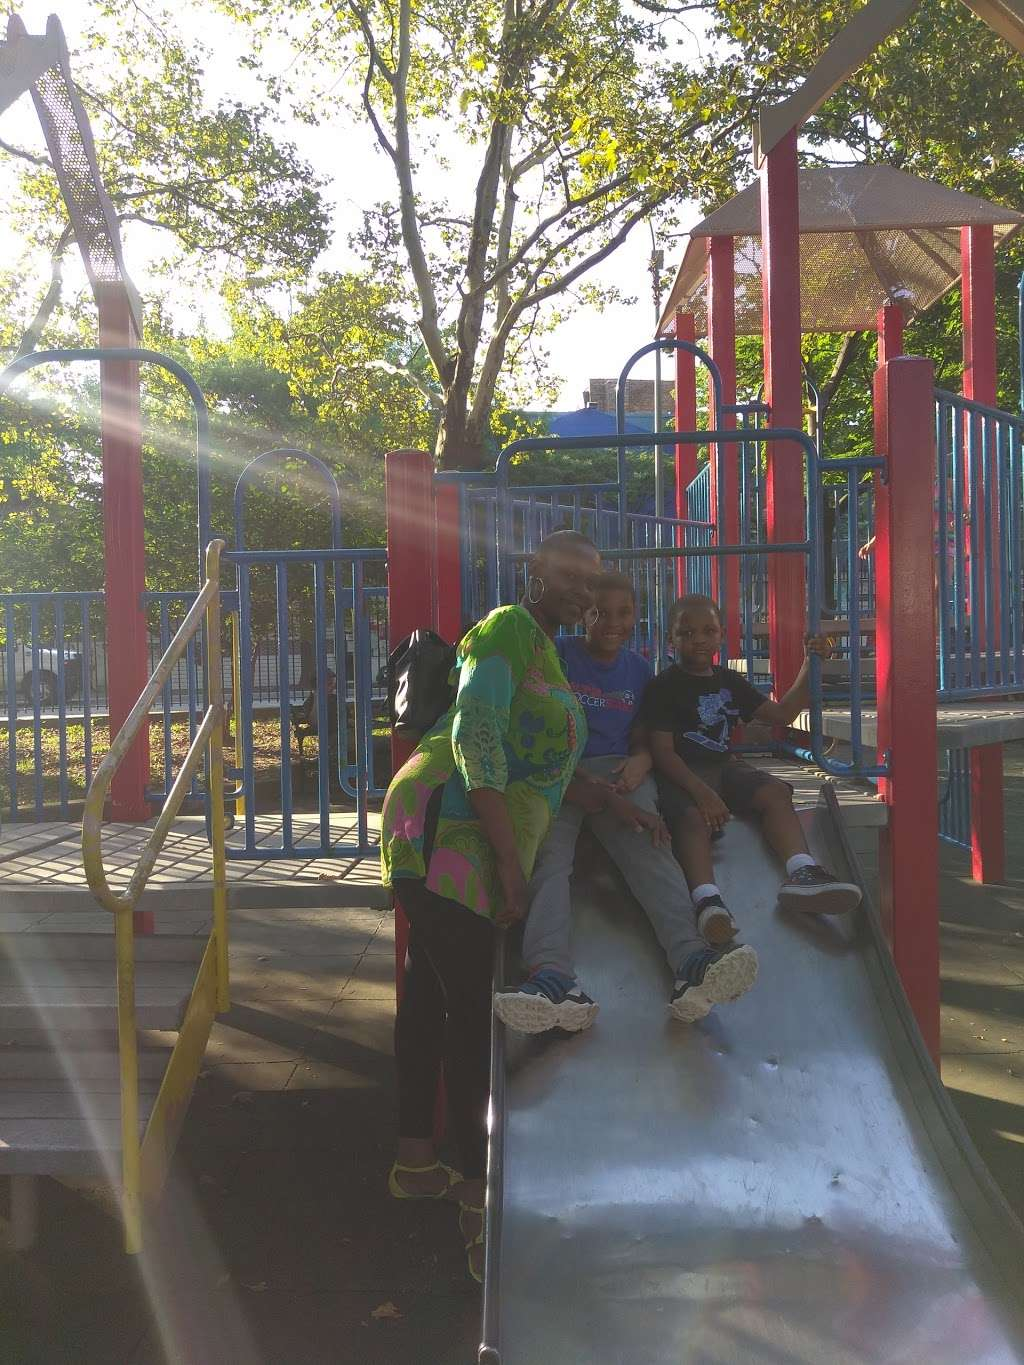 Youth Village Playground - park  | Photo 6 of 10 | Address: 1181 Boston Rd, Bronx, NY 10456, USA | Phone: (212) 639-9675